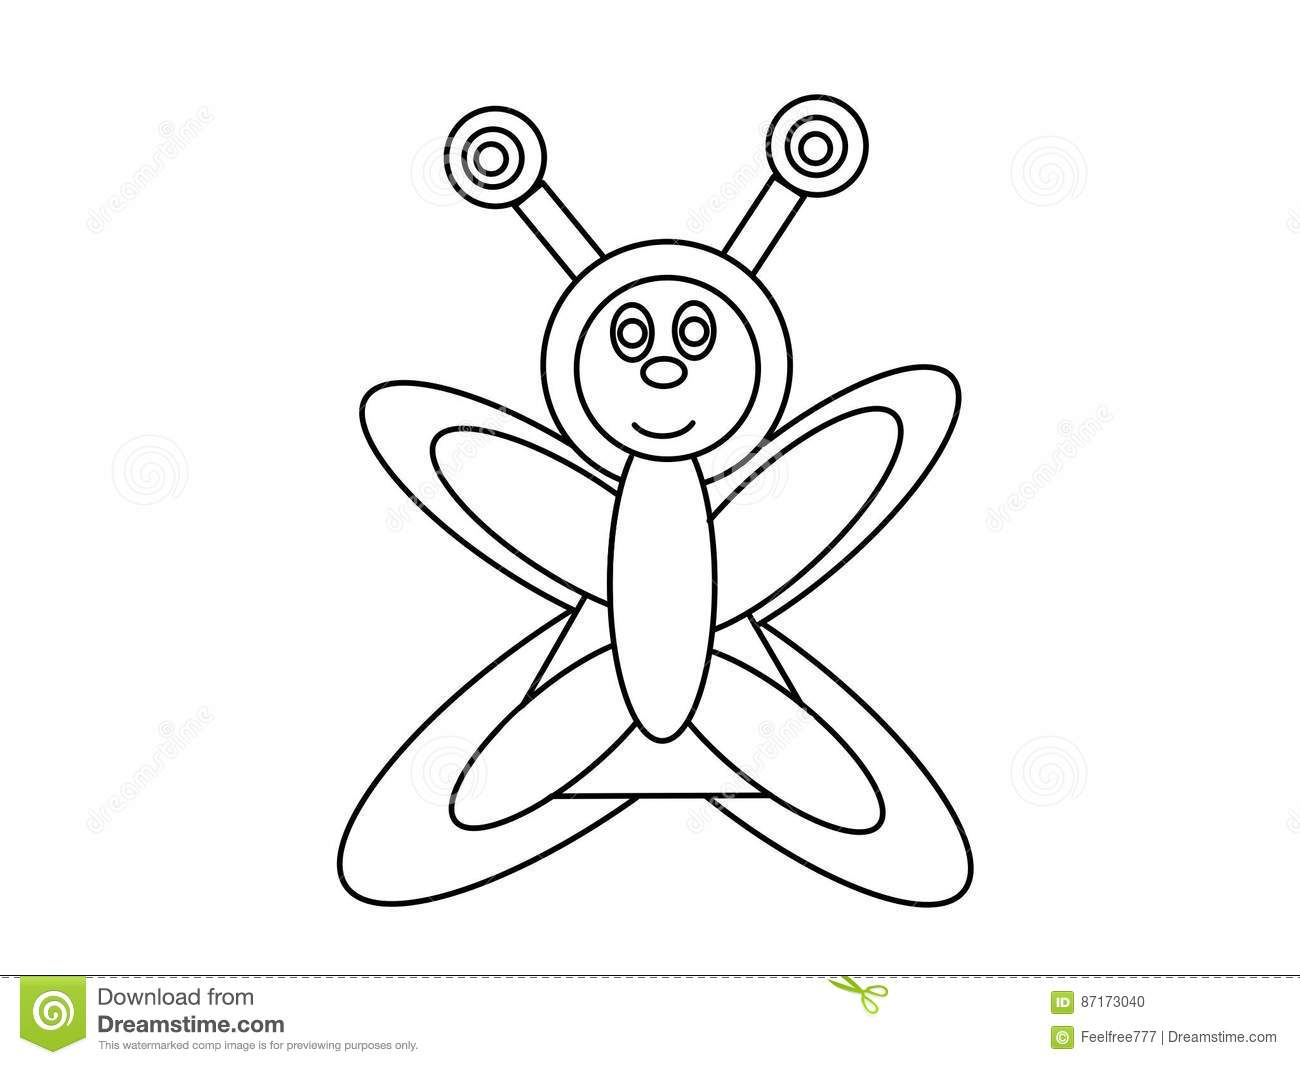 butterfly high quality kids coloring pages very you can use work all your needs such as books web design presentations